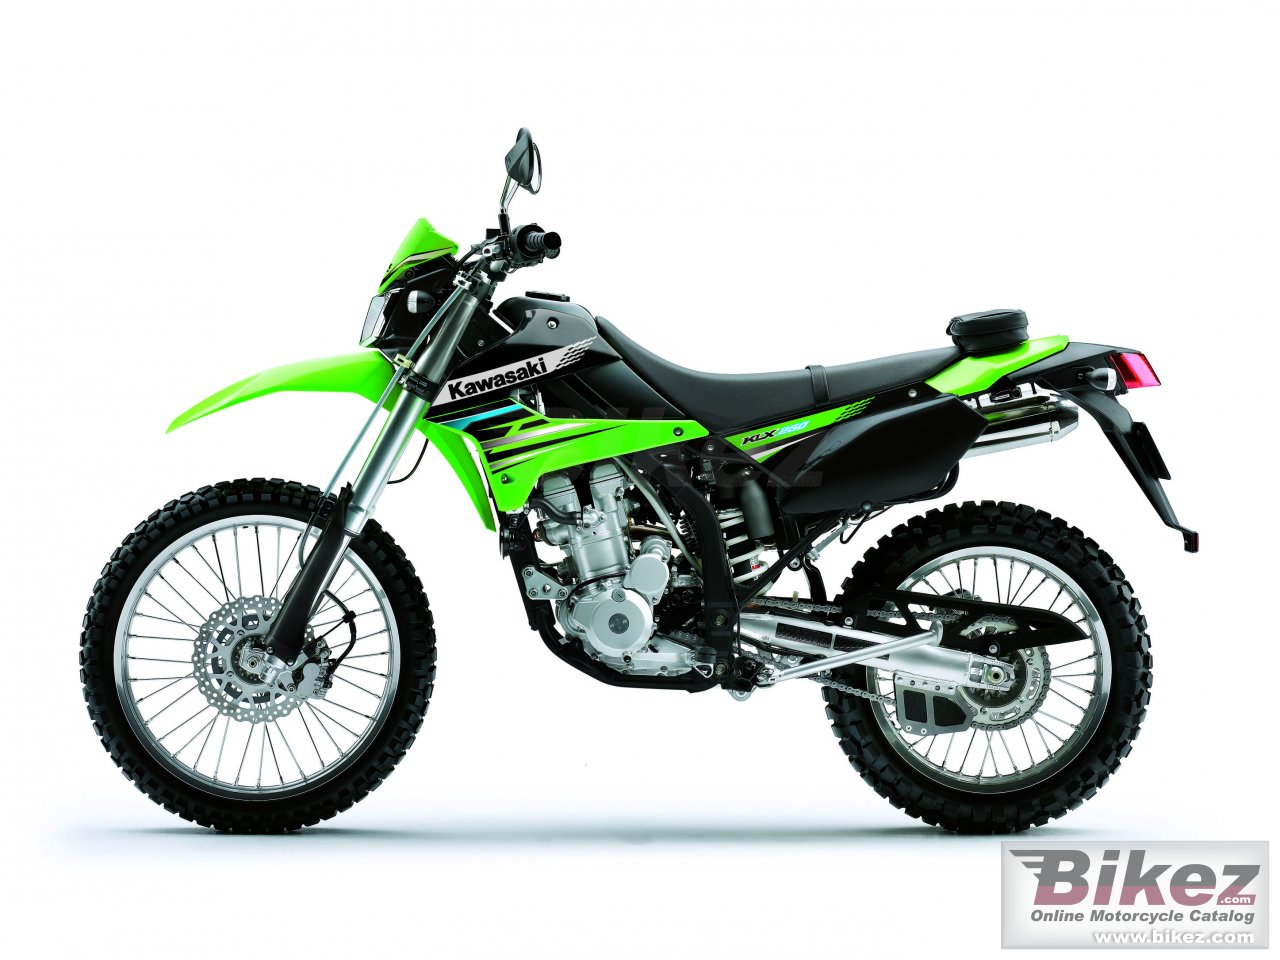 Big Kawasaki klx 250 picture and wallpaper from Bikez.com